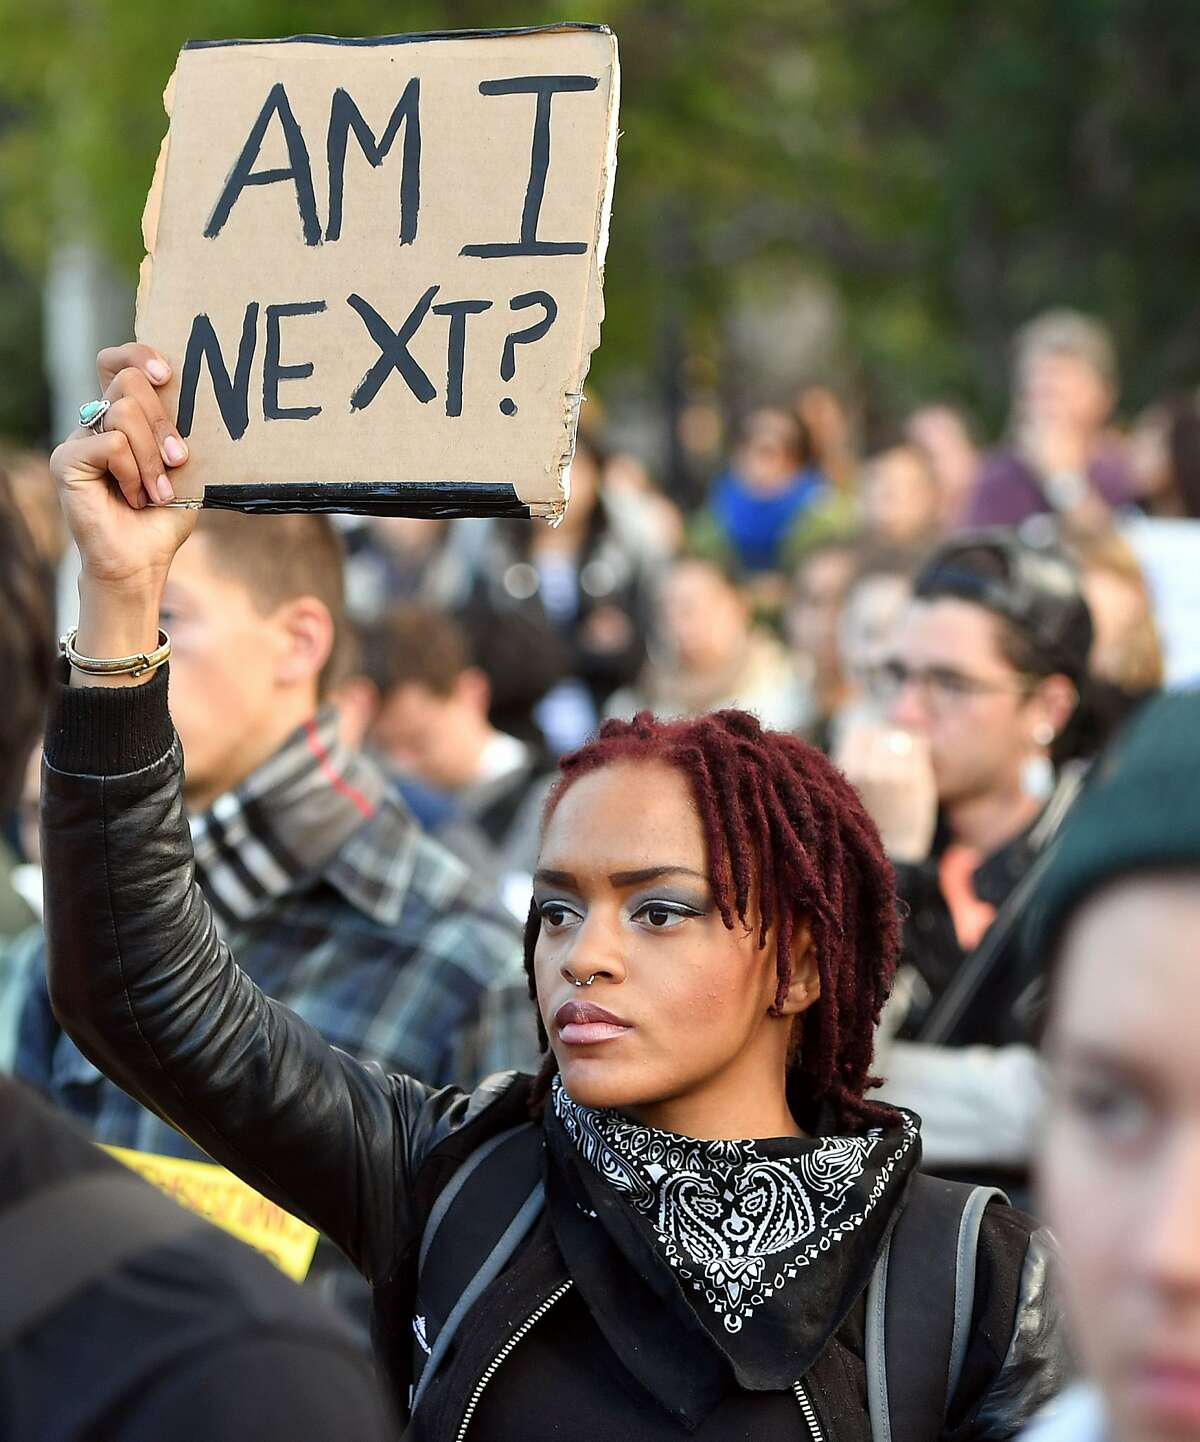 A woman holds up a sign during a rally at Justin Herman Plaza to denounce recent police shootings around the country, in San Francisco, California on July 8, 2016. Thousands of protesters took to the streets in US cities on July 8 after a black extremist shot dead five cops during a peaceful march against police brutality in Texas. / AFP PHOTO / Josh EdelsonJOSH EDELSON/AFP/Getty Images